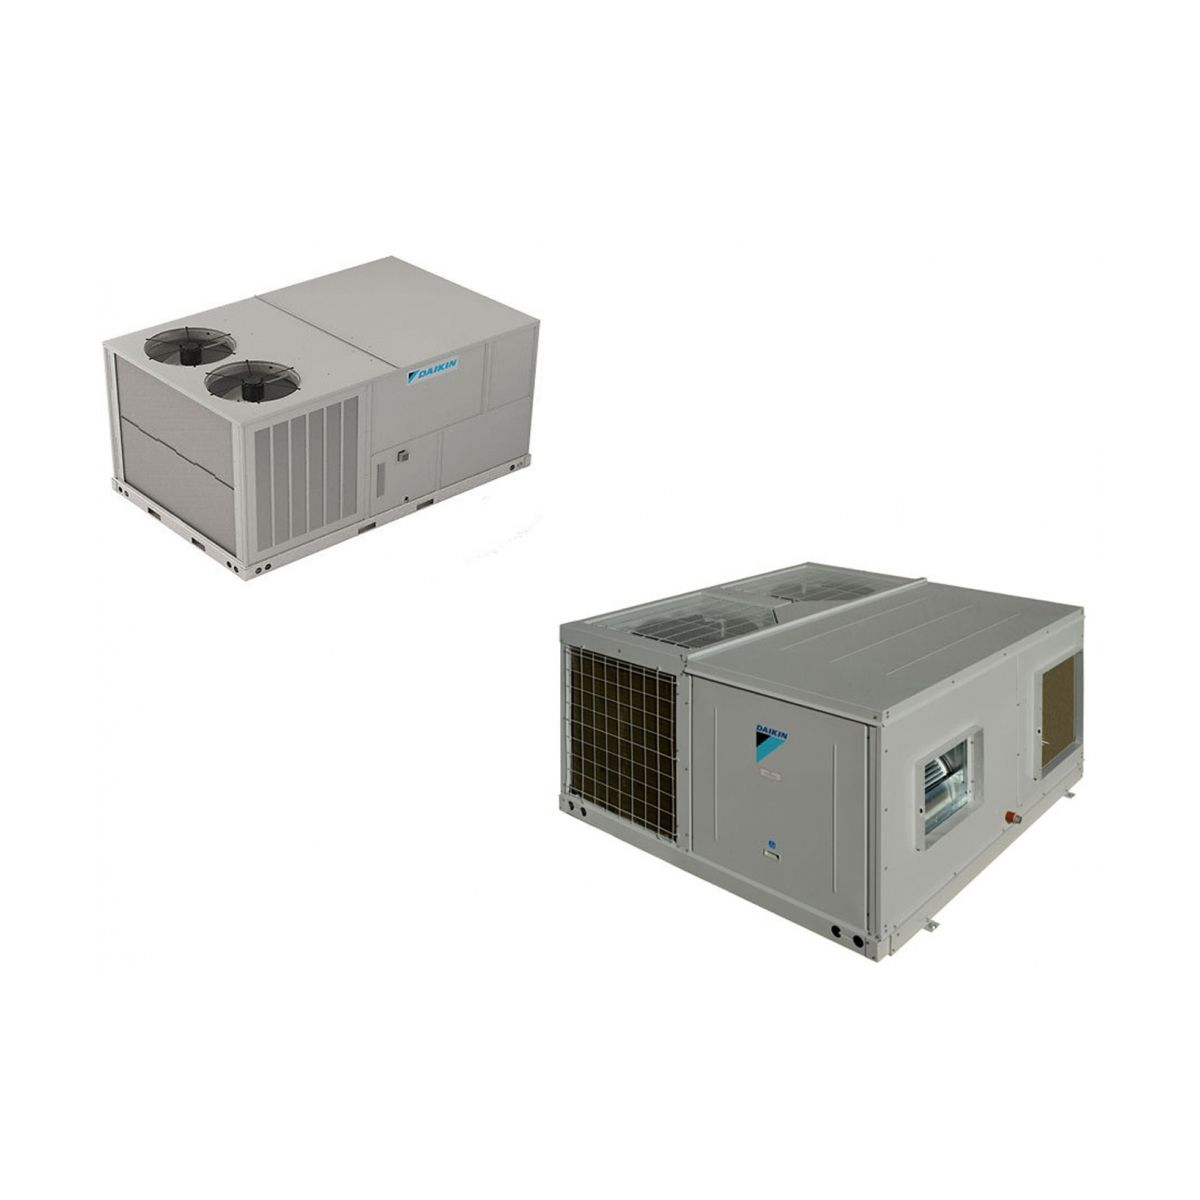 Daikin Air Conditioning Rooftop Packaged Unit Uatyq250cy1